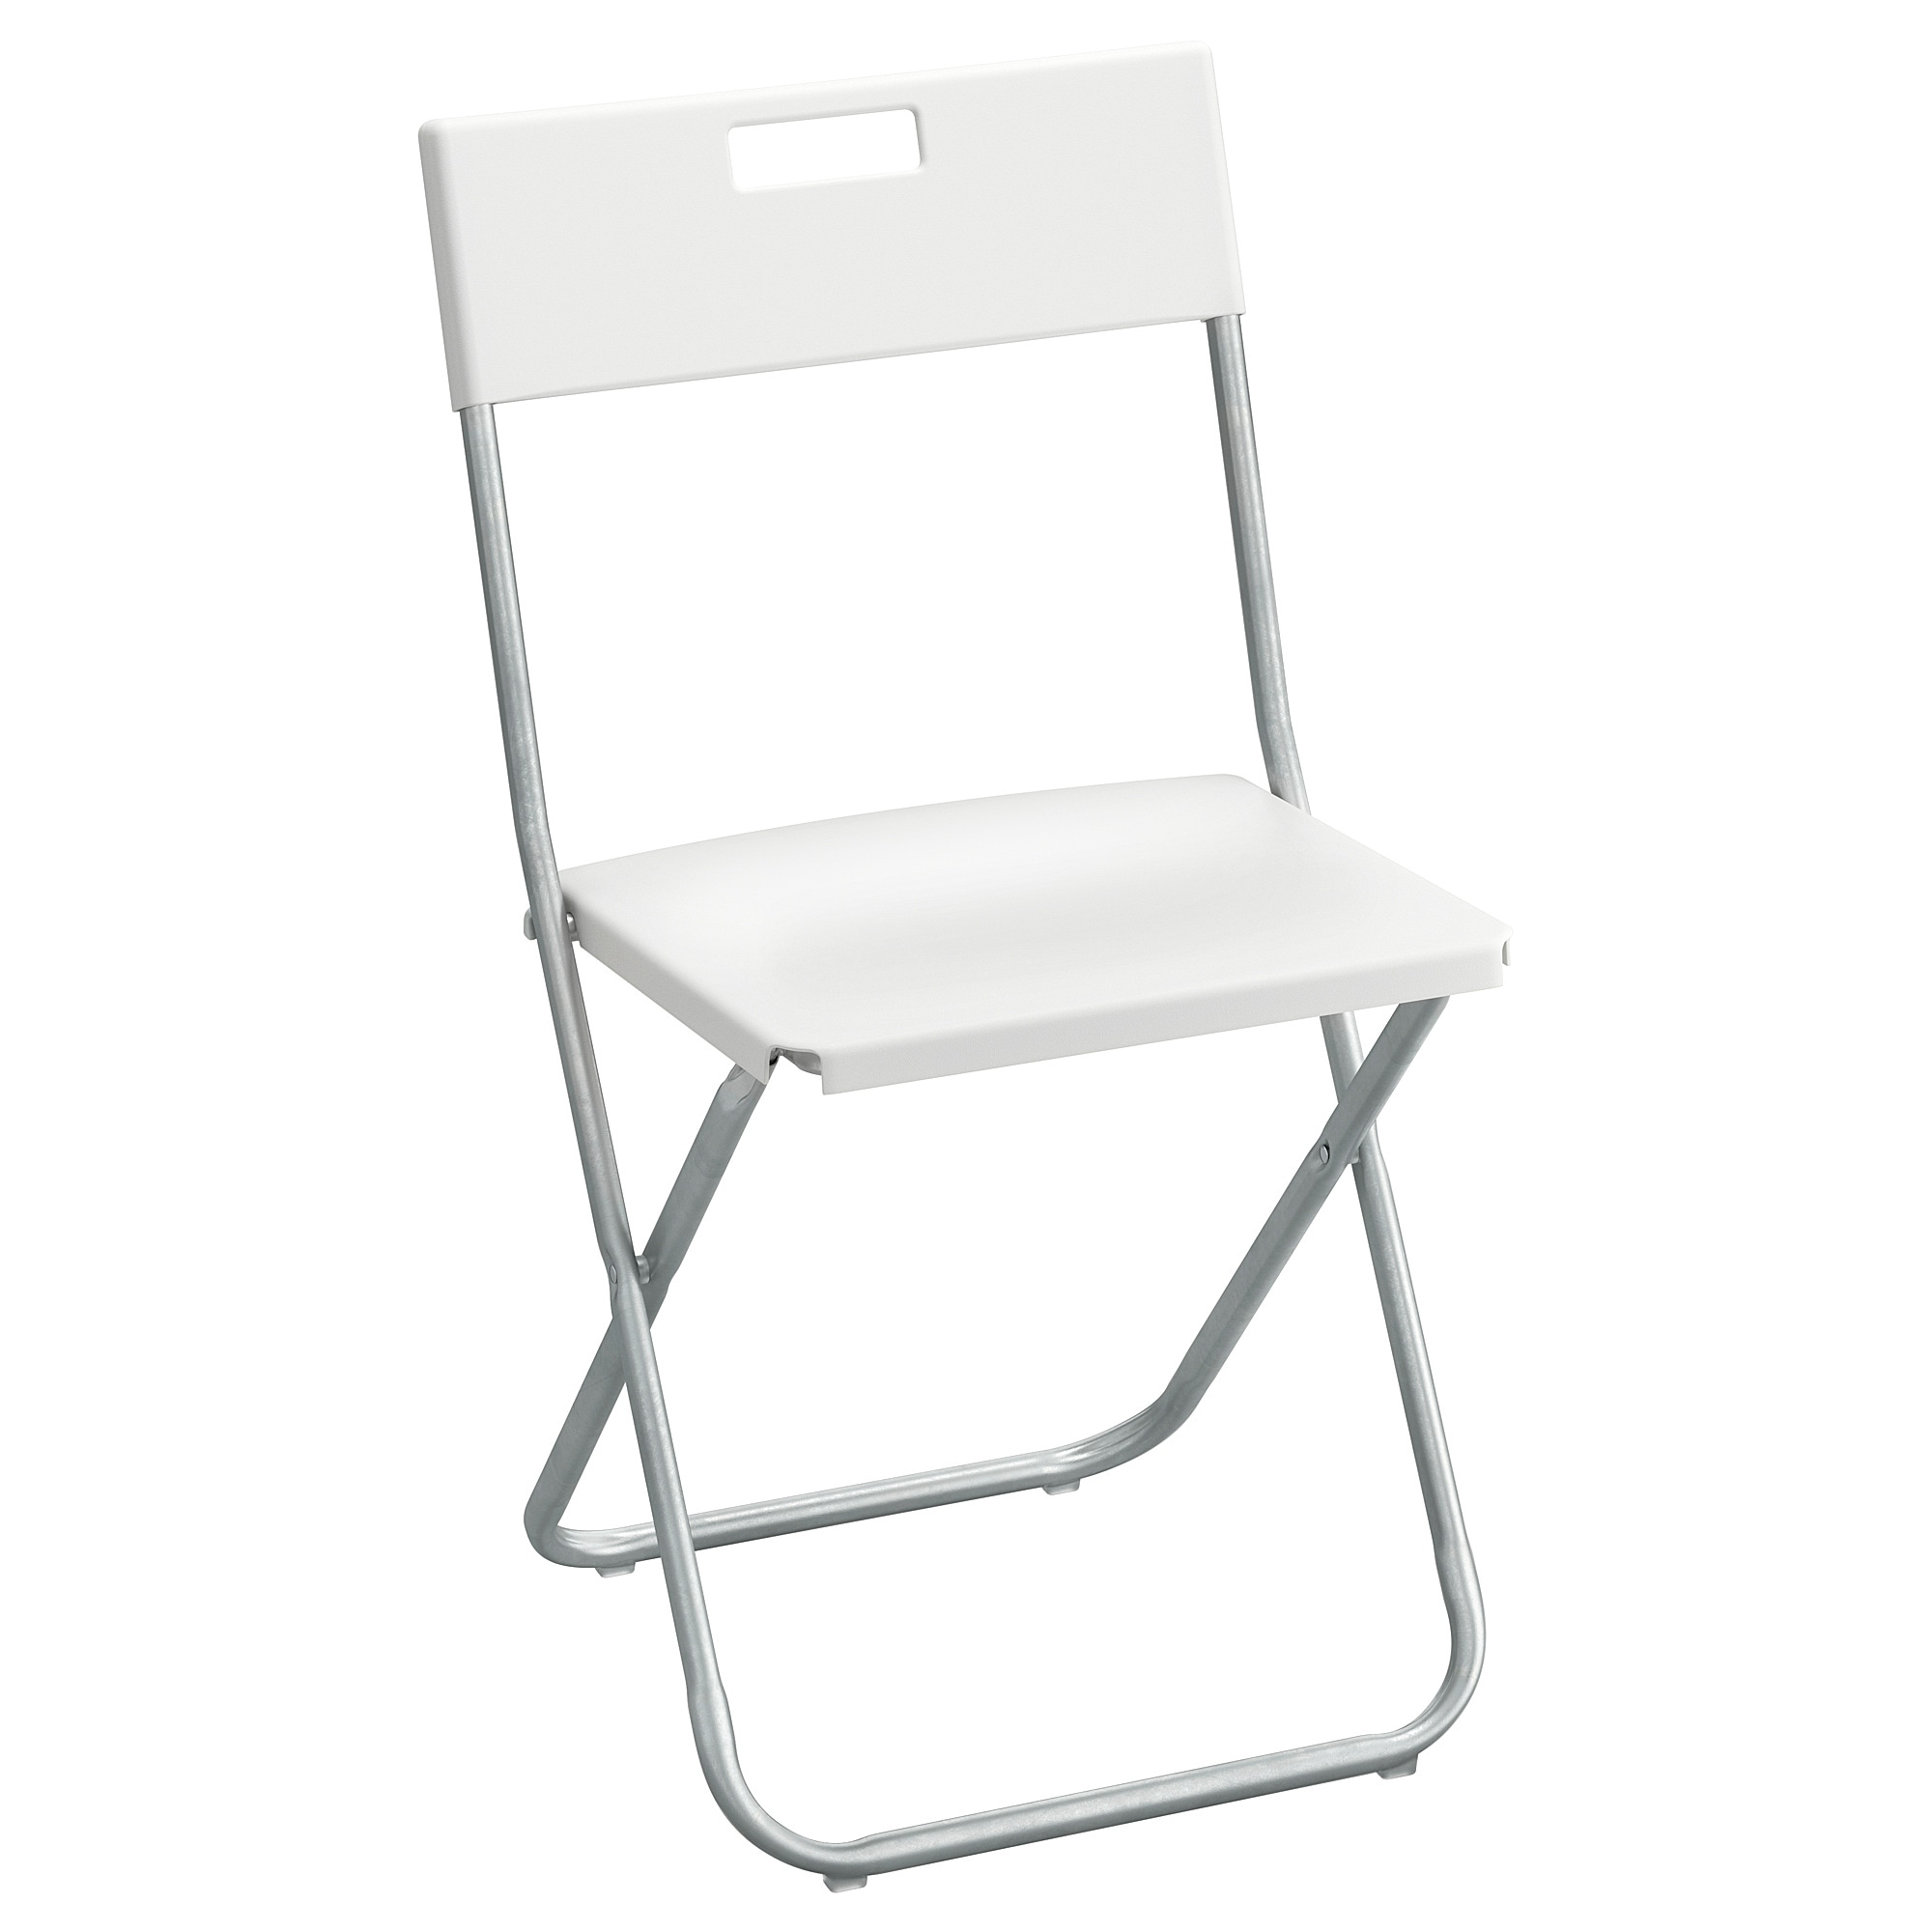 Iron Frame Locking Portable Folding Chairs Intended For Best And Newest Folding Chair Gunde White (View 11 of 25)